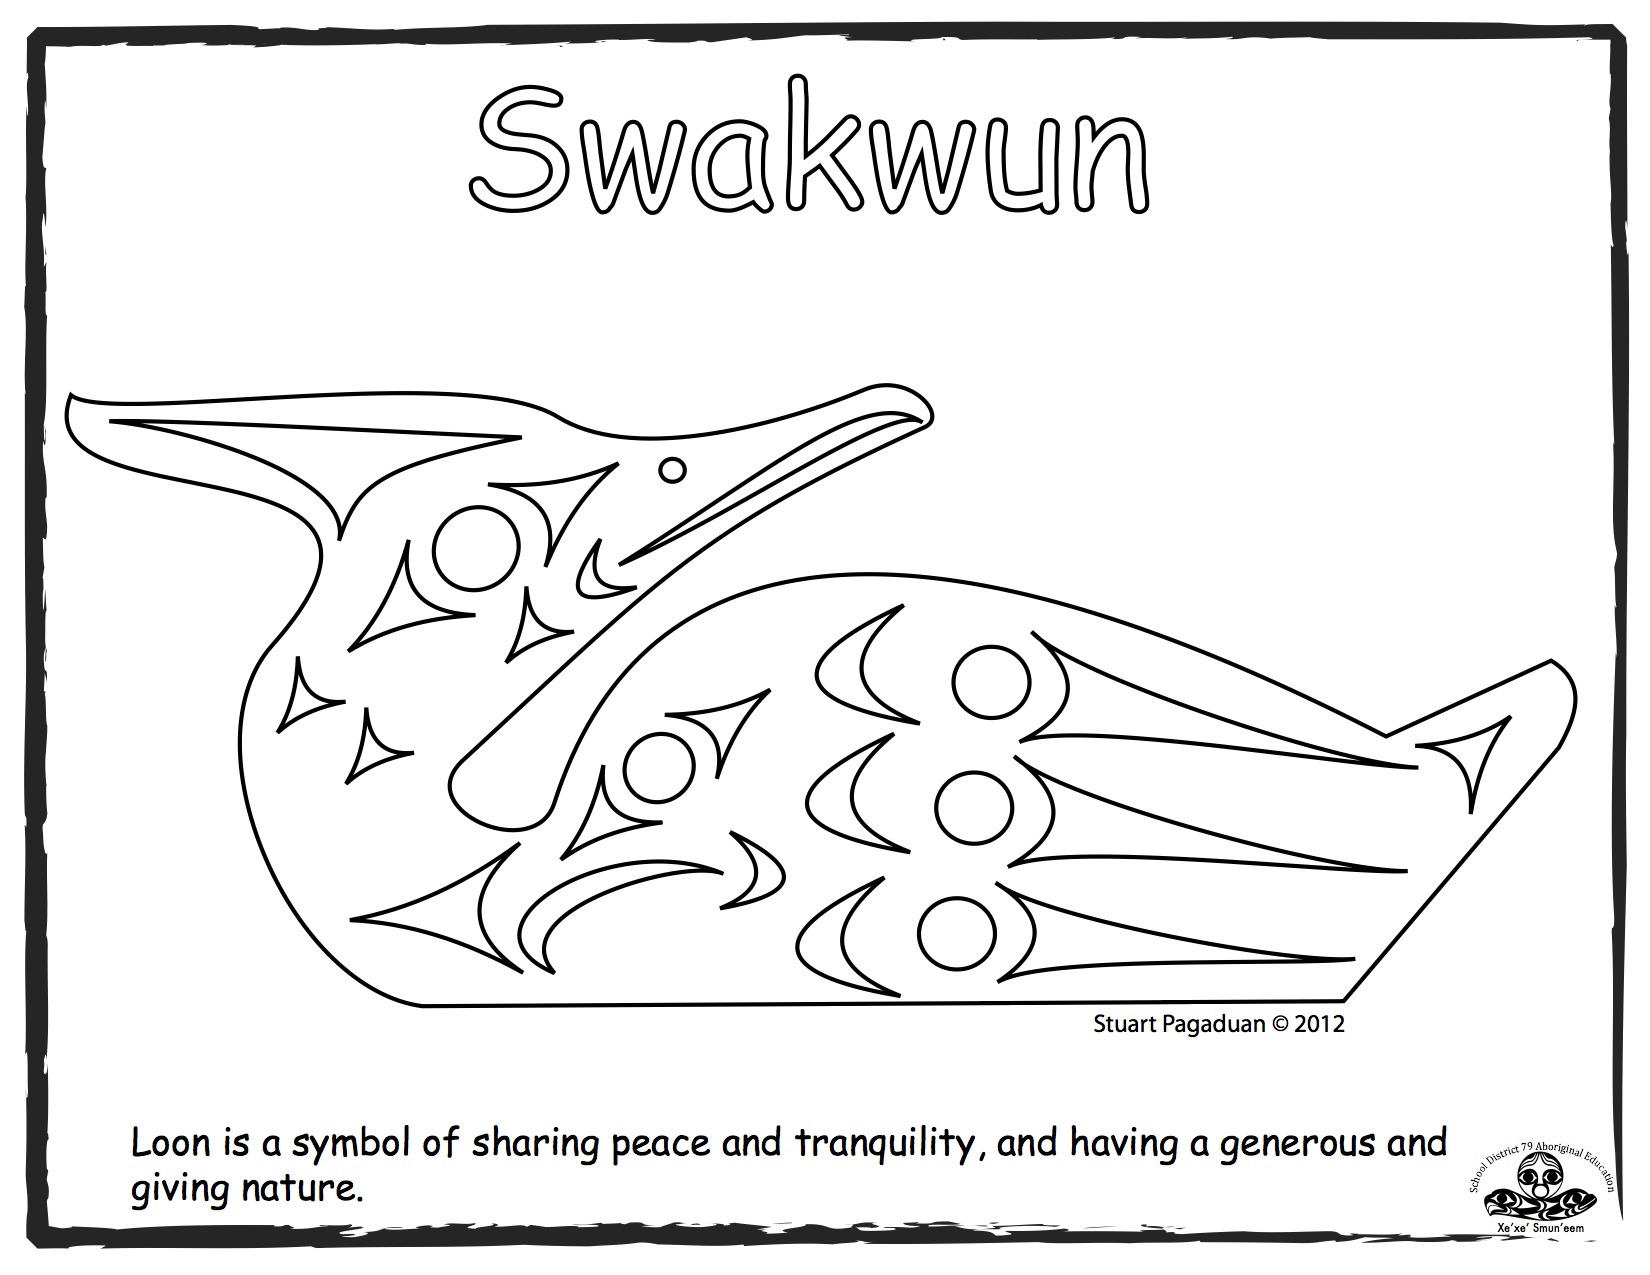 loon-swakwun-outline